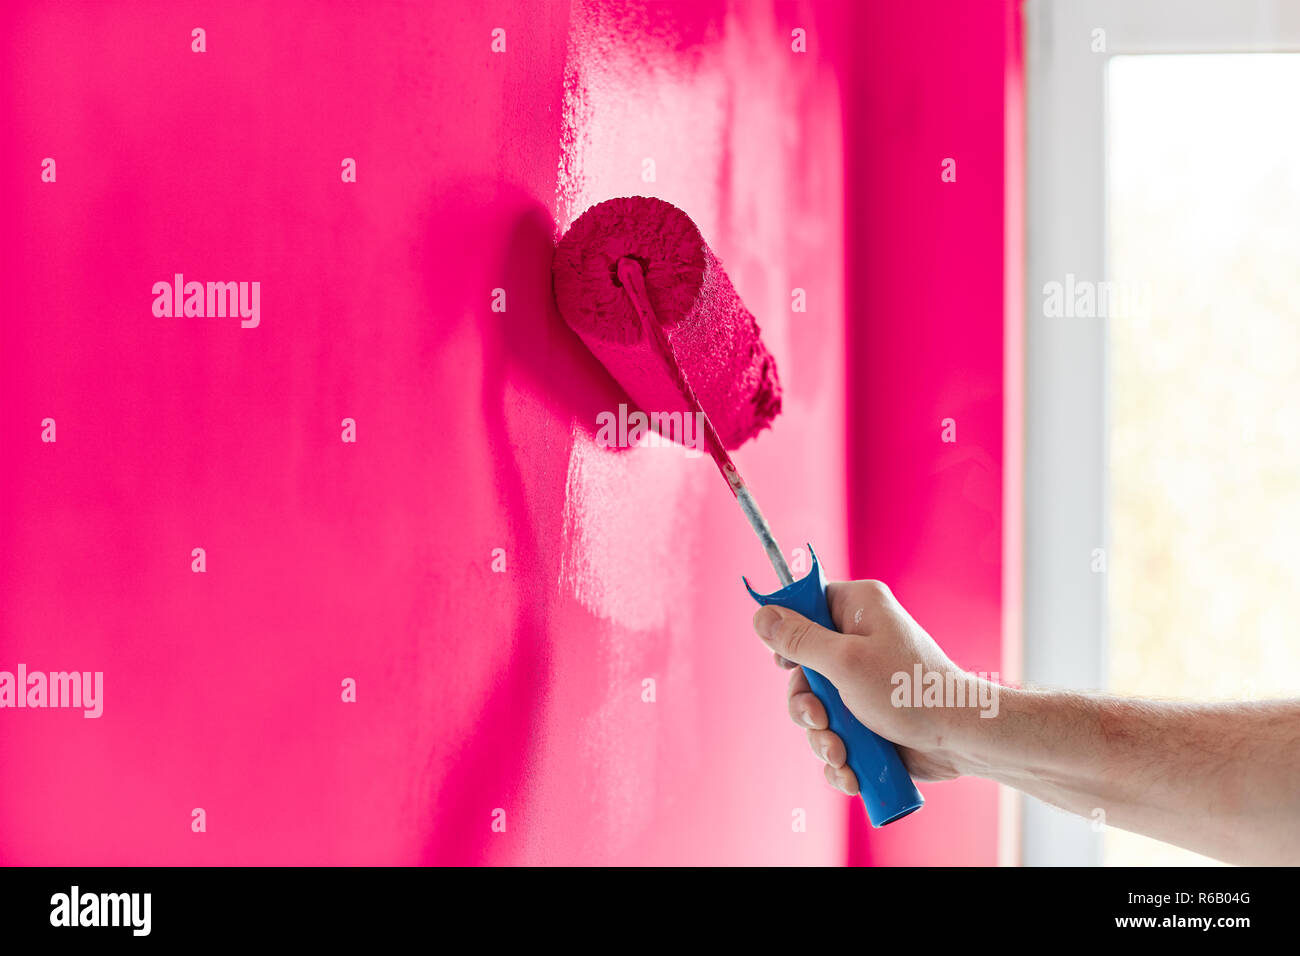 Male Hand Painting Wall With Paint Roller Painting Apartment